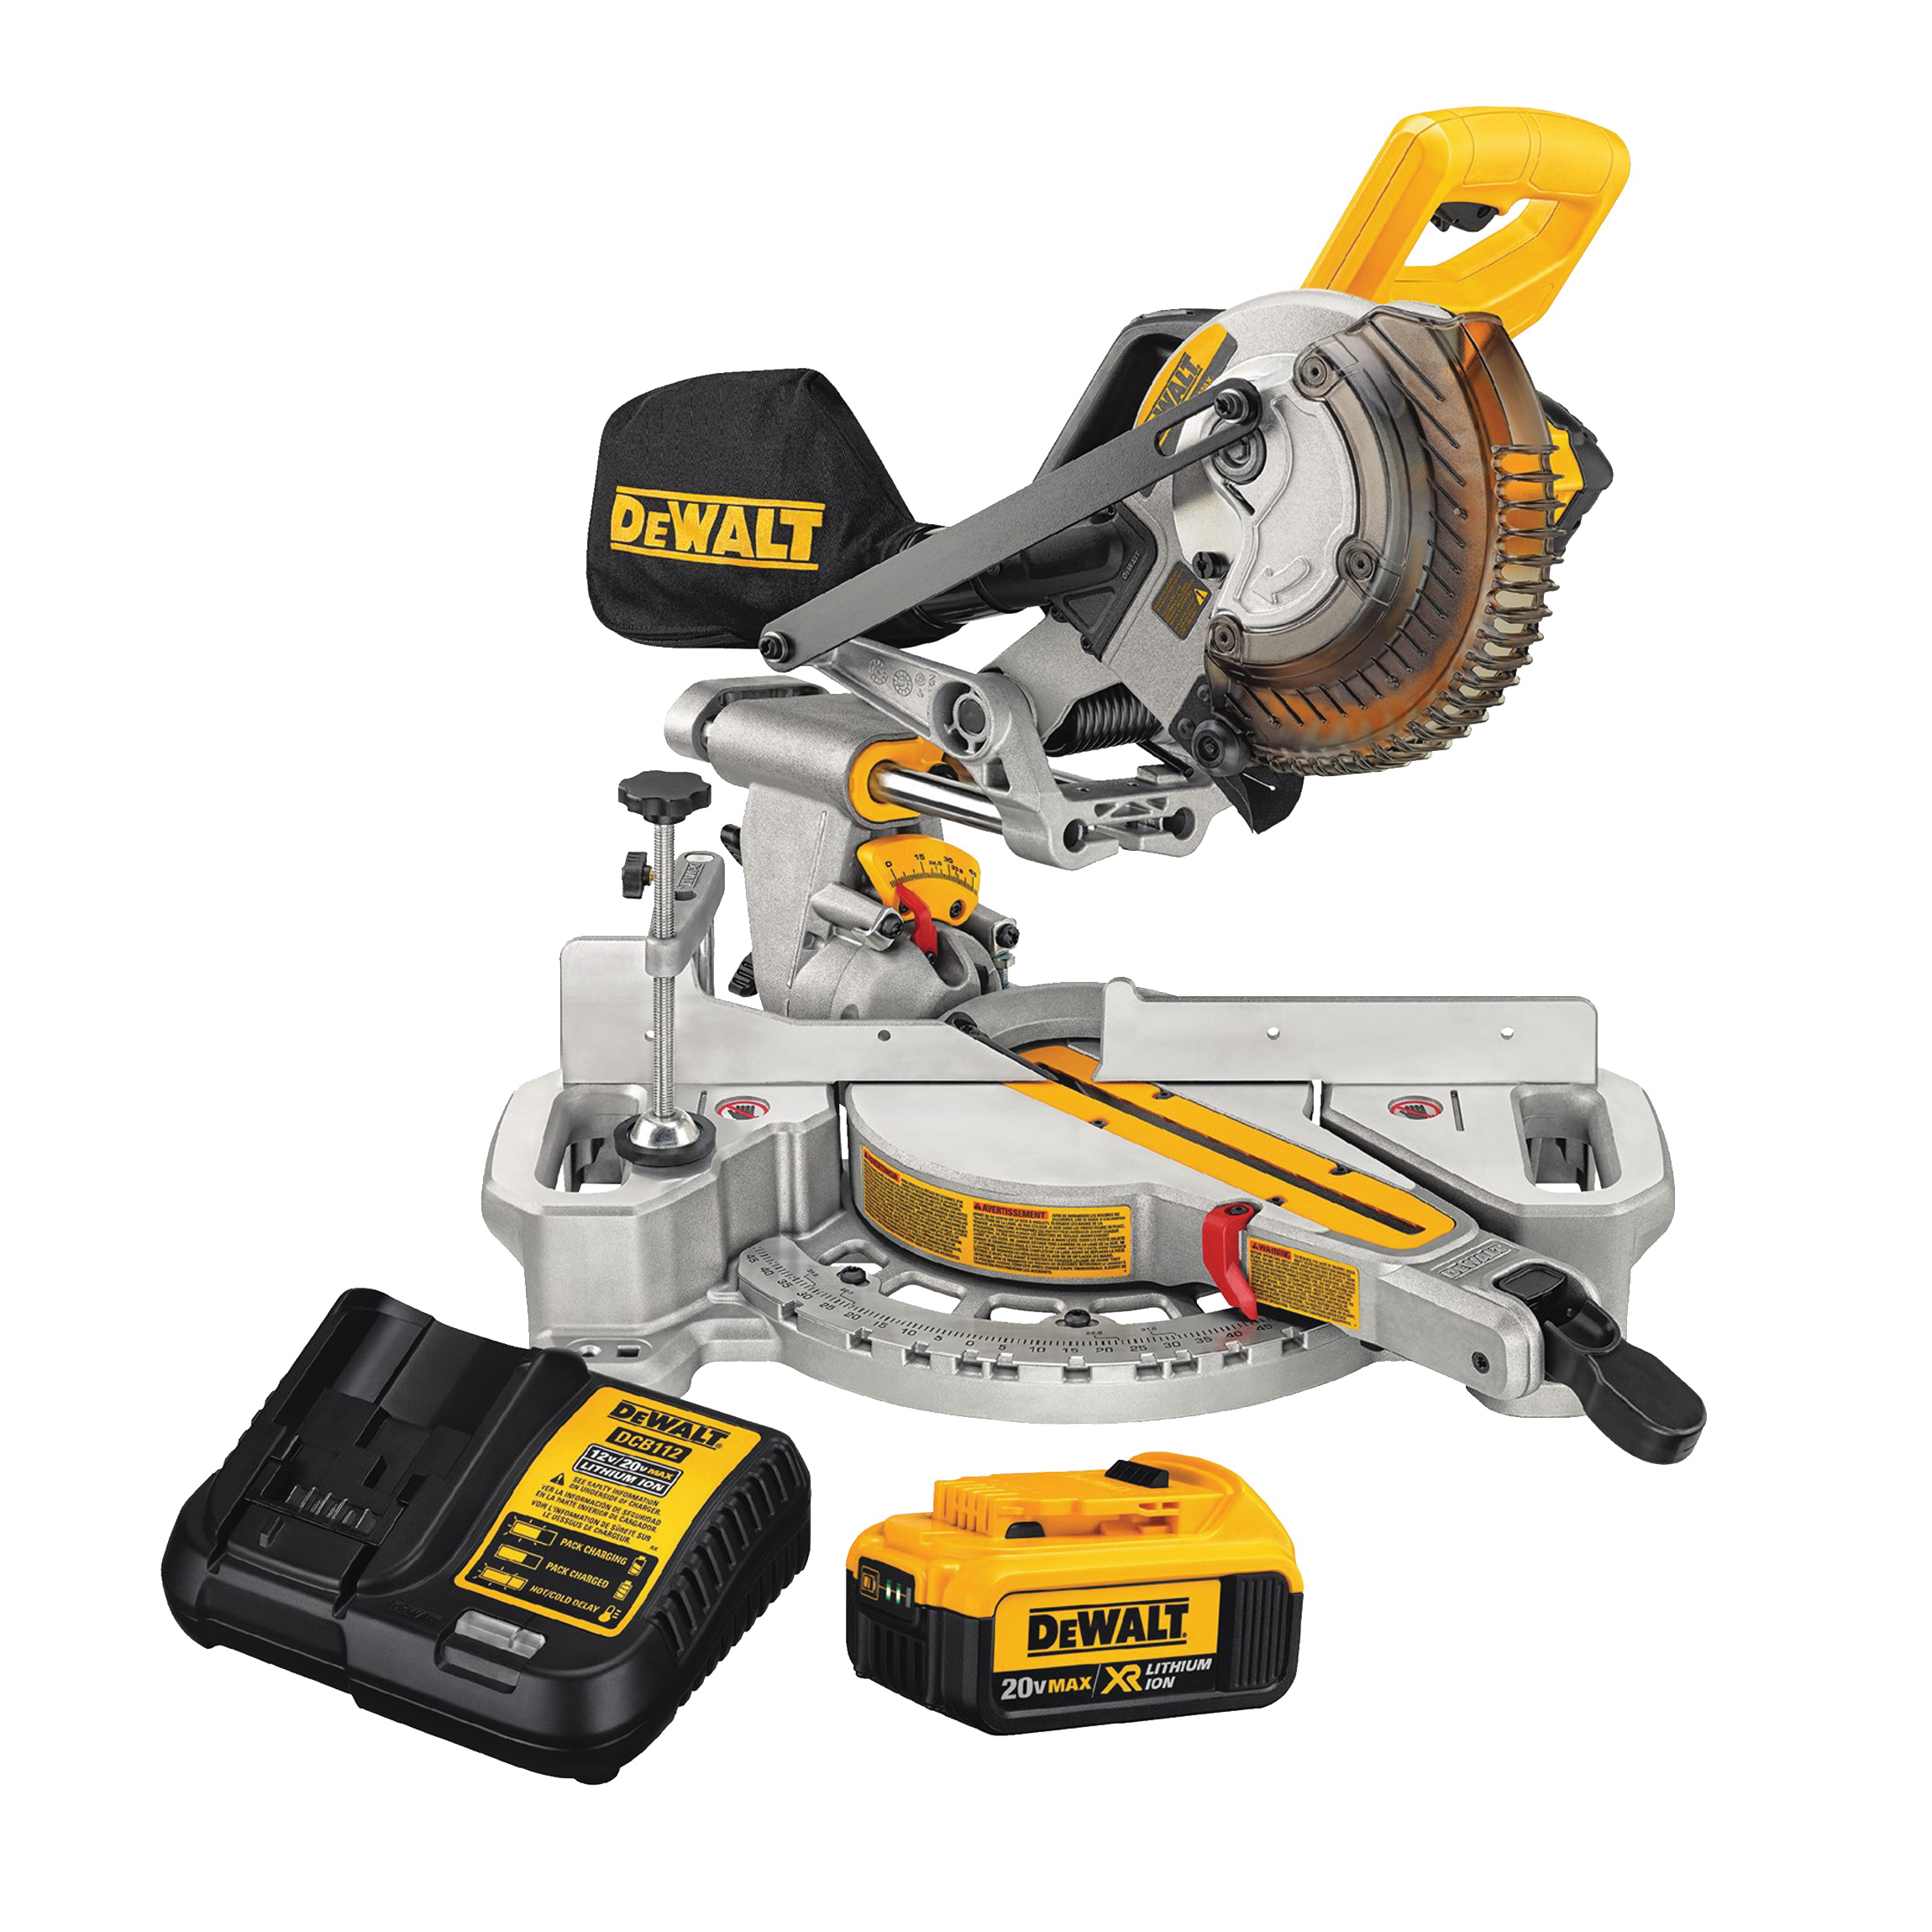 Picture of DeWALT DCS361M1 Sliding Miter Saw, Battery, 7-1/4 in Dia Blade, 3750 rpm Speed, 45 deg Max Miter Angle